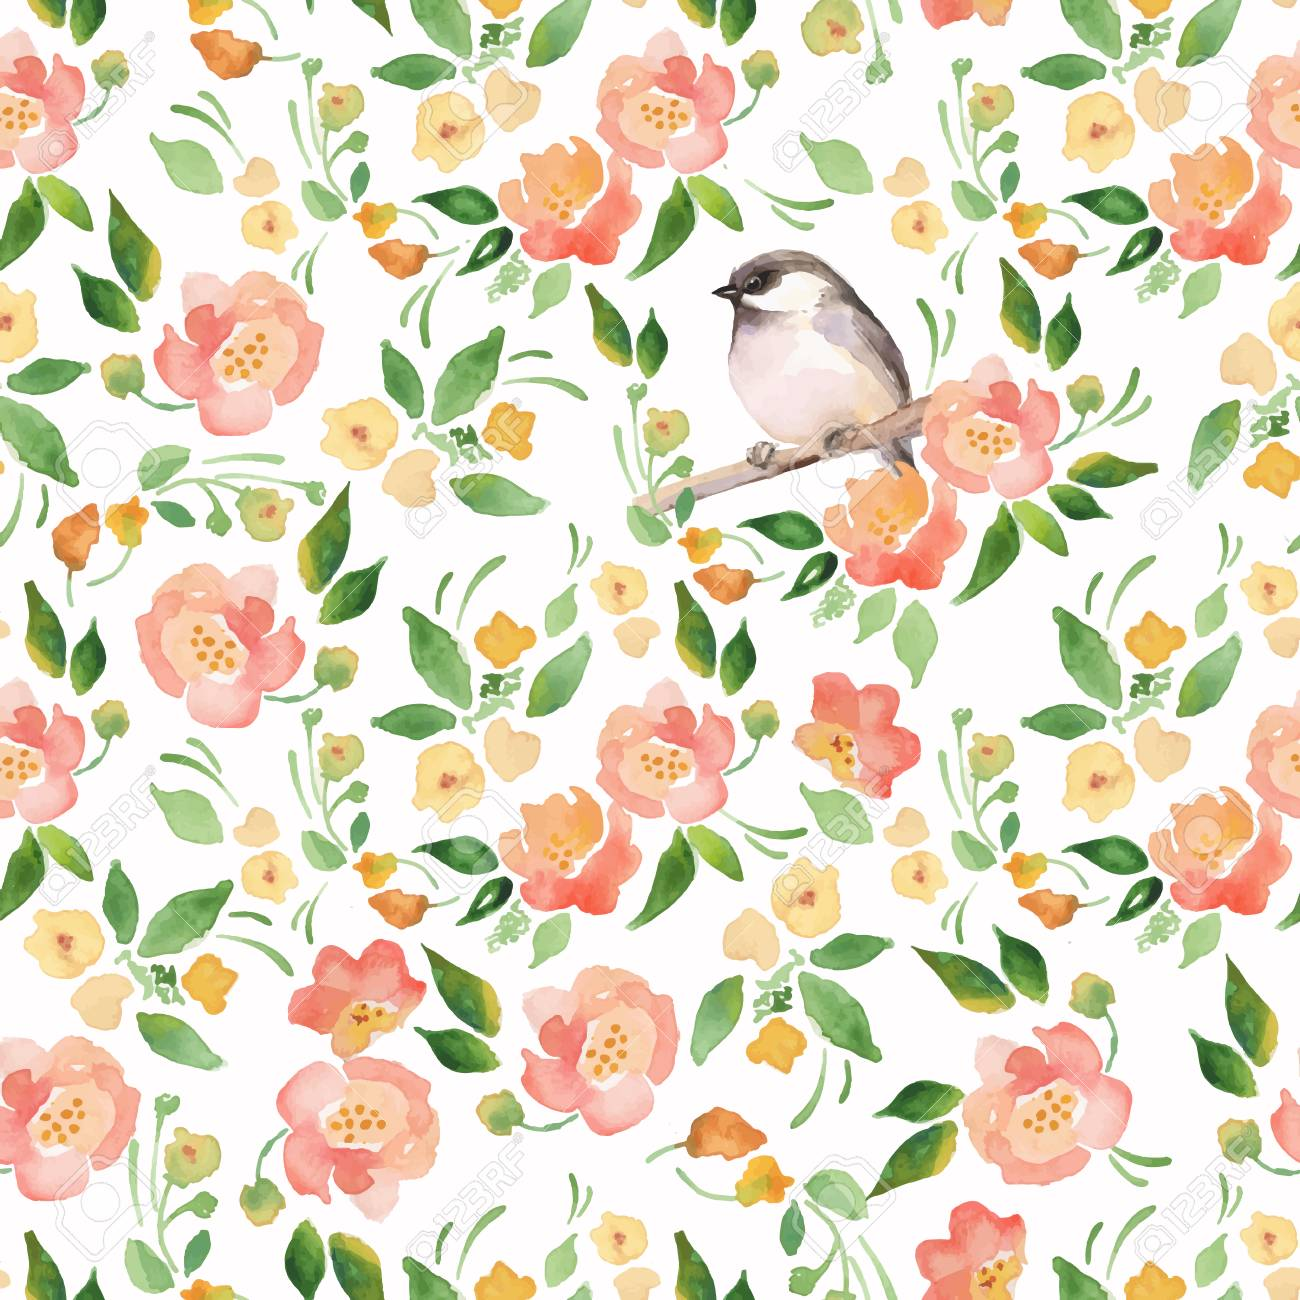 Watercolor floral background with a cut bird. Seamless vector pattern 11 - 44173640